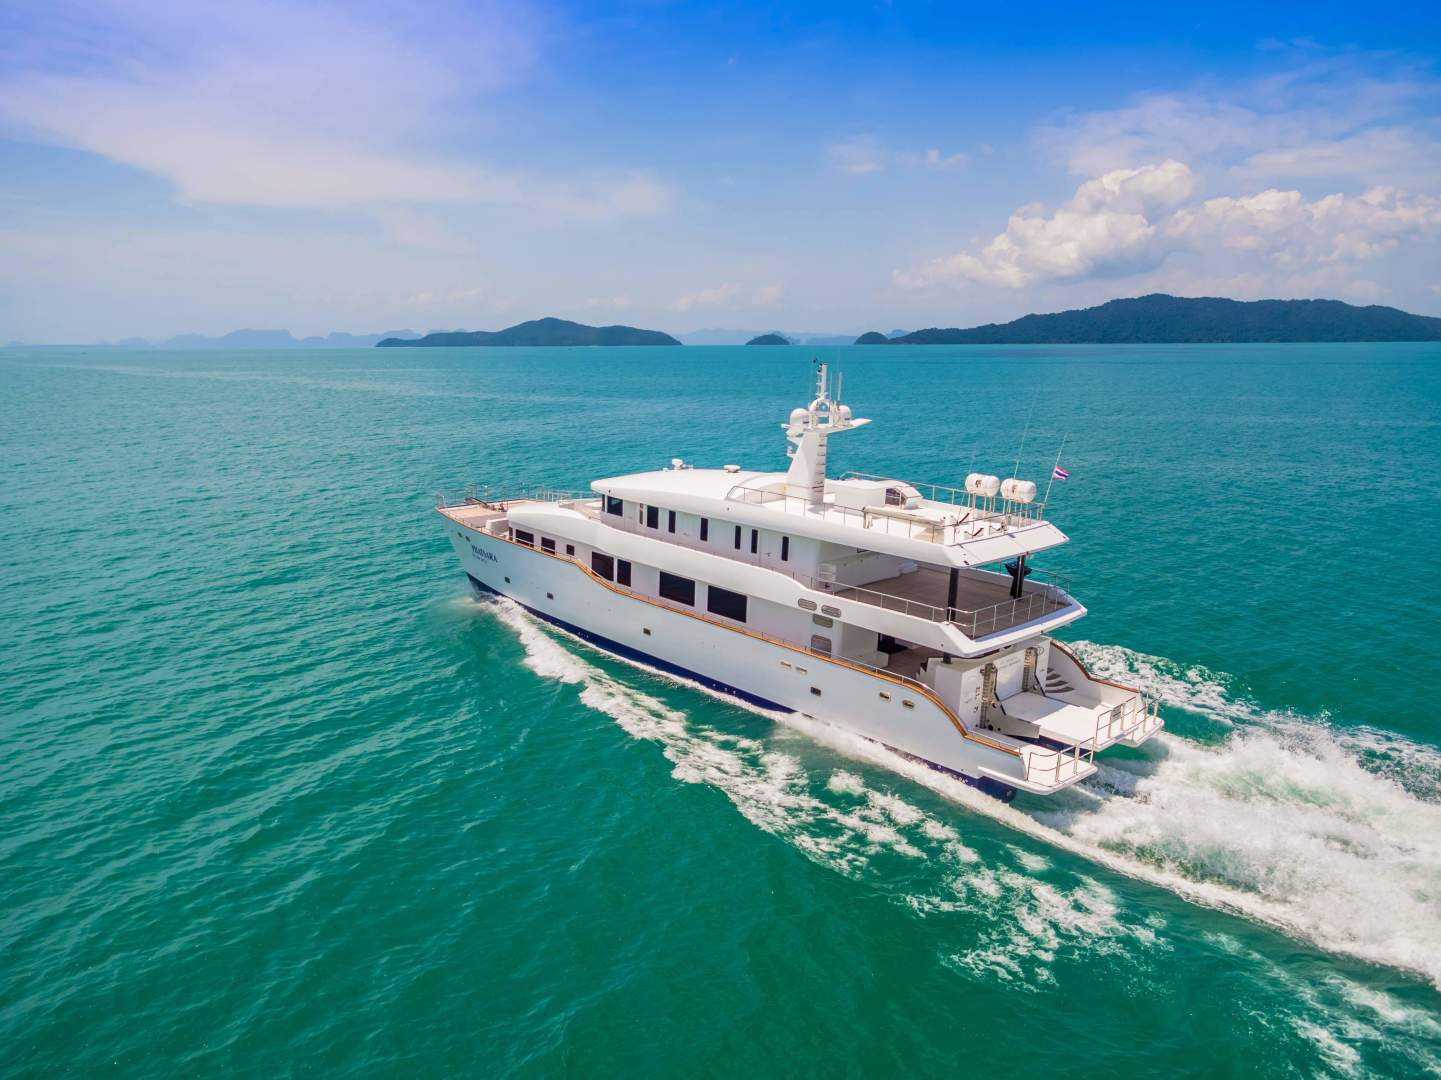 Custom-Incat Crowther 37M Power Catamaran 2012-Phatsara Phuket-Thailand-Phatsara -Incat Crowther Power Catamaran for sale-1121049 | Thumbnail